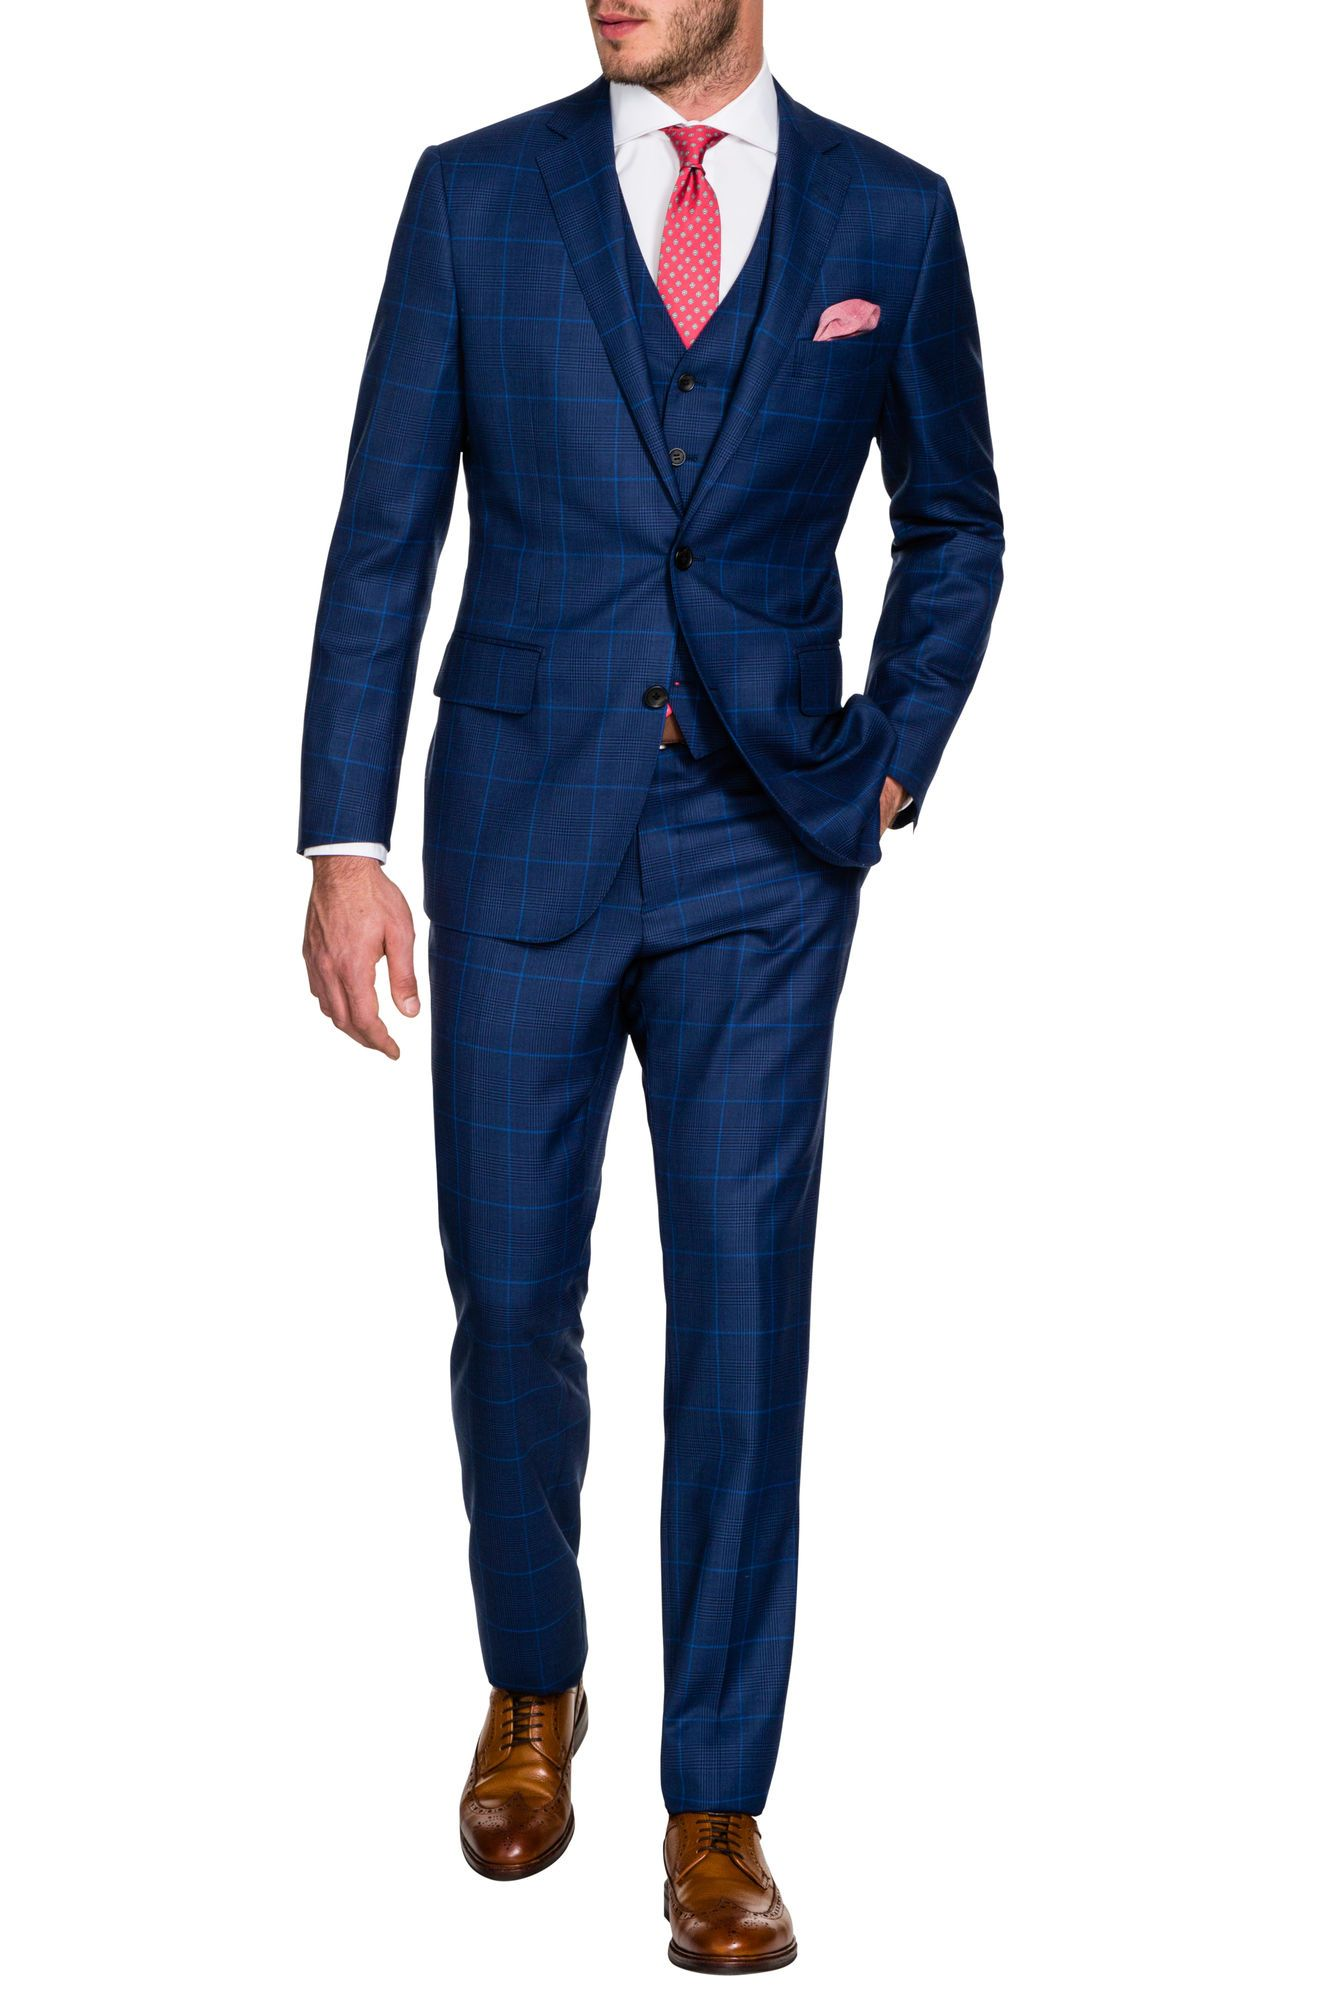 Dobell Blue Jacket, | Men's fashion